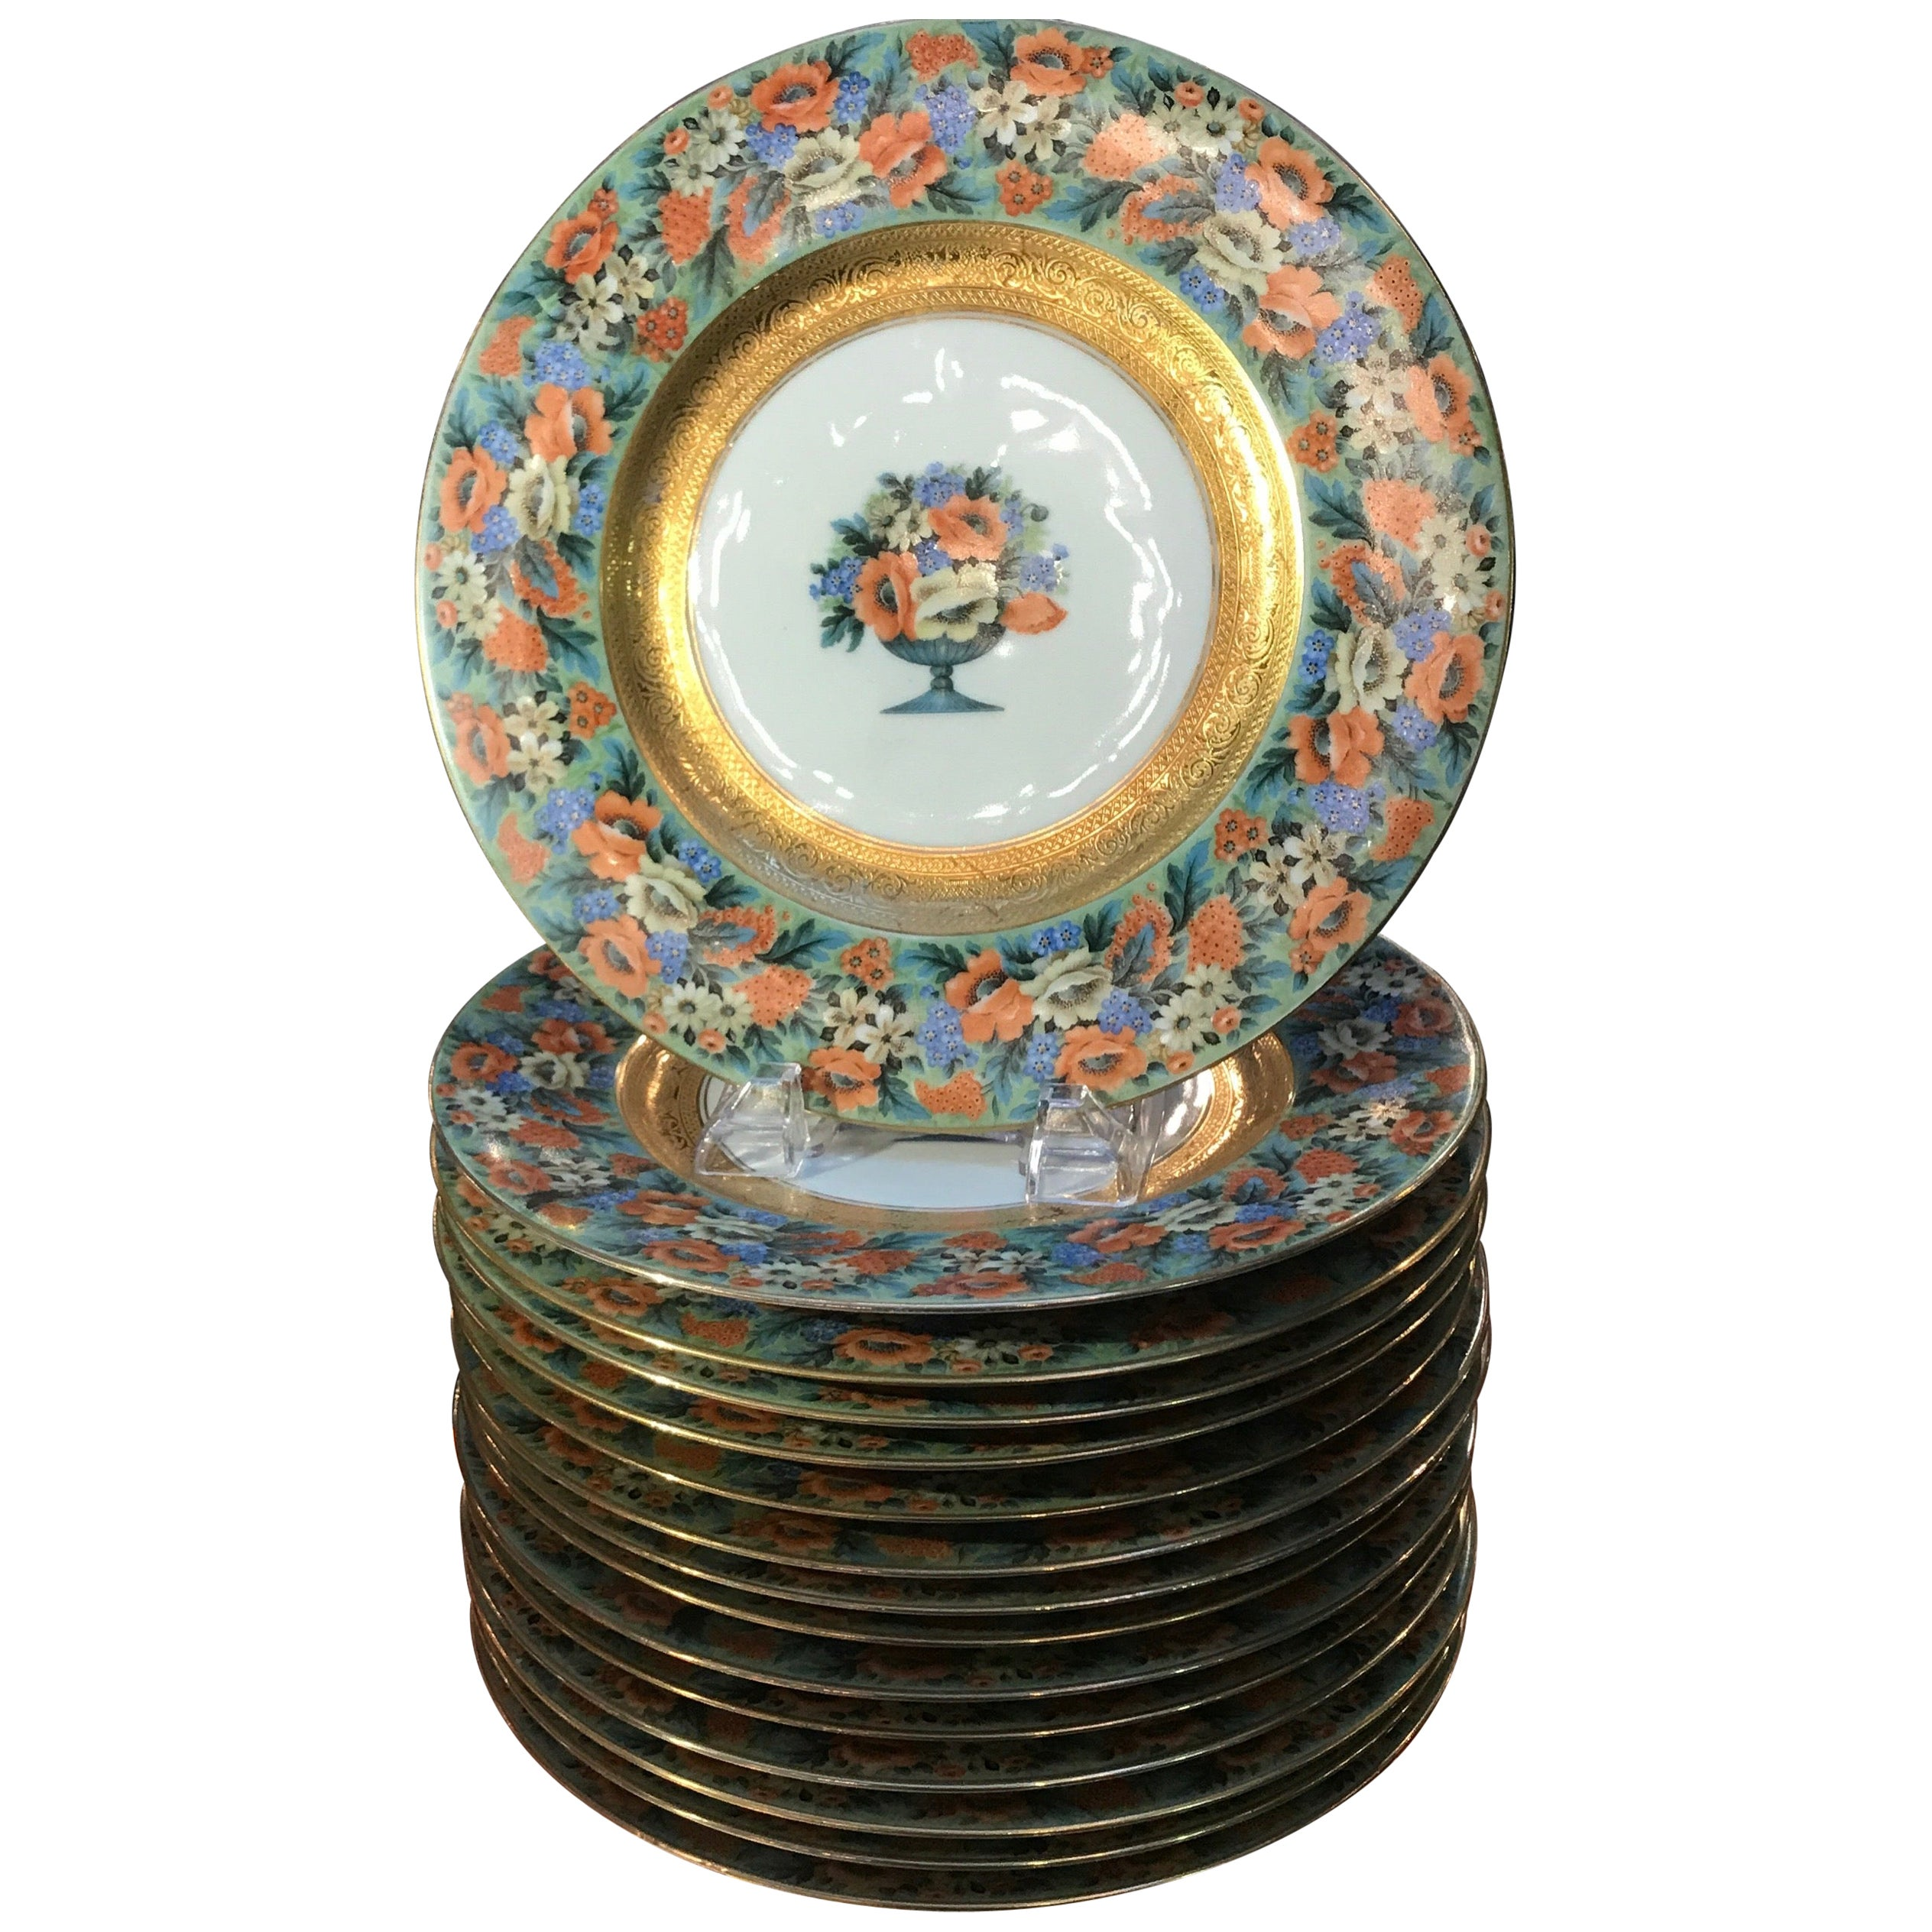 Set of 15 Floral and Gilt Service Dinner Plates